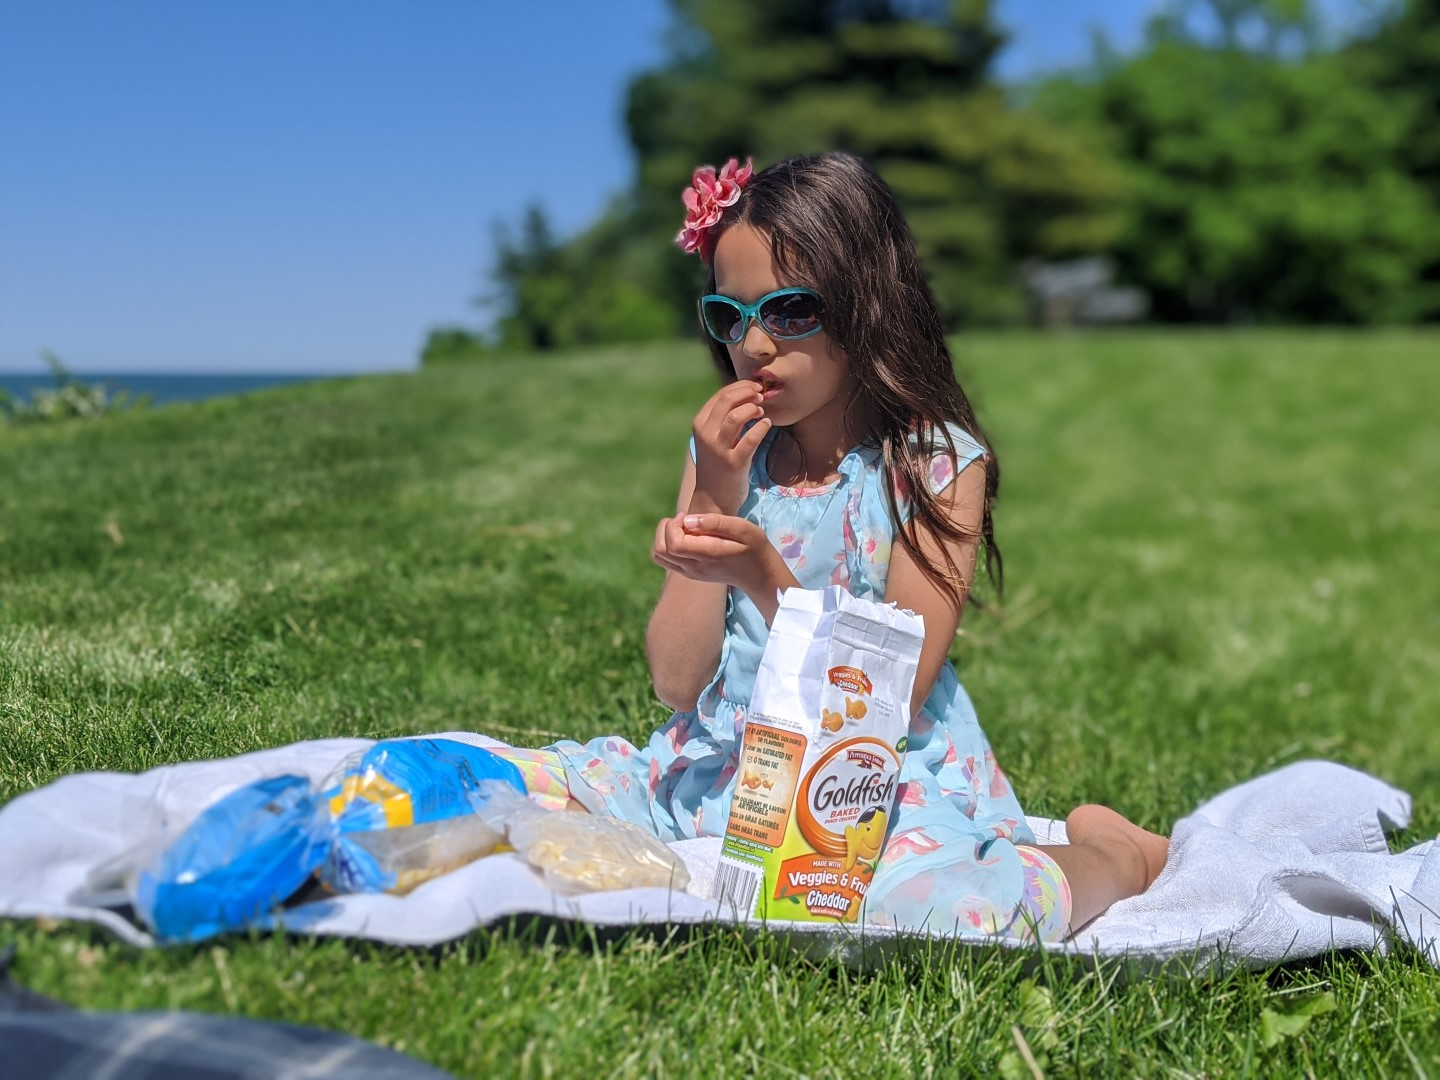 girl wearing sunglasses picnic in grass with goldfish